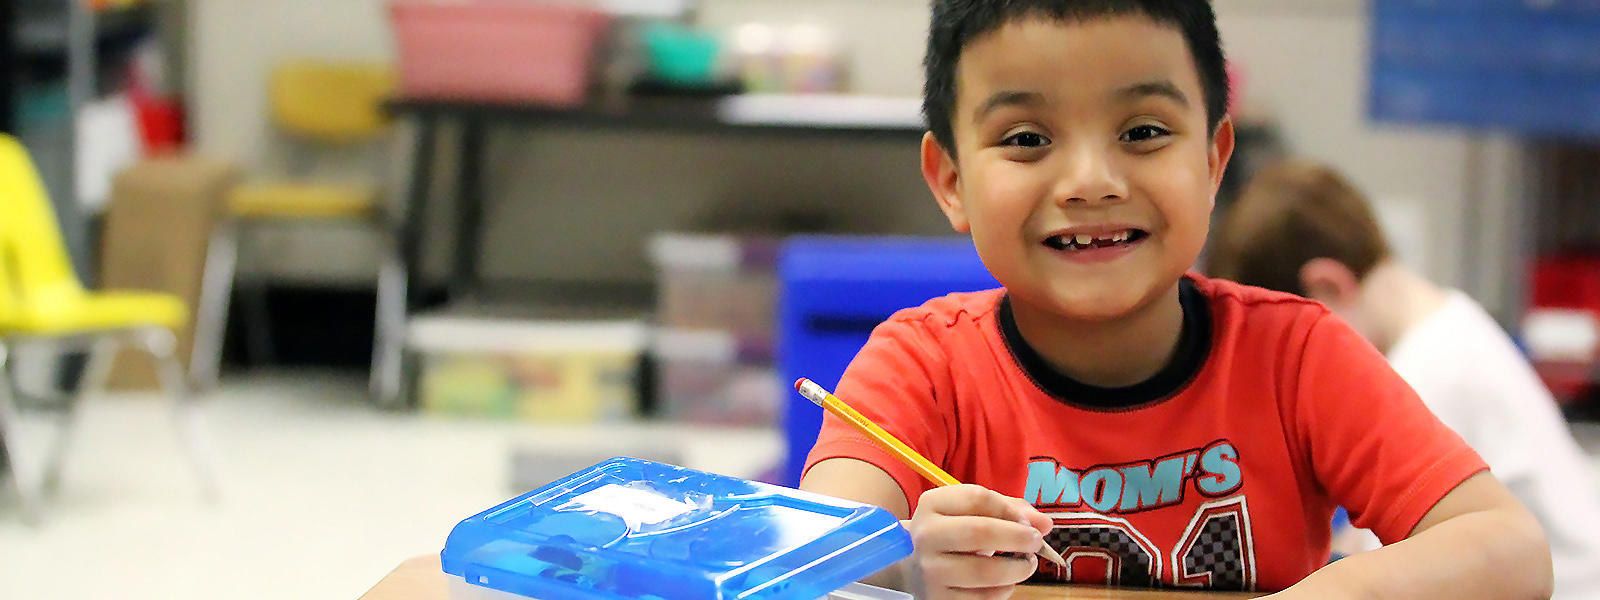 A student in Ms. Barbara Bocka's afternoon kindergarten class smiles at the camera while working on an assignment at his desk.